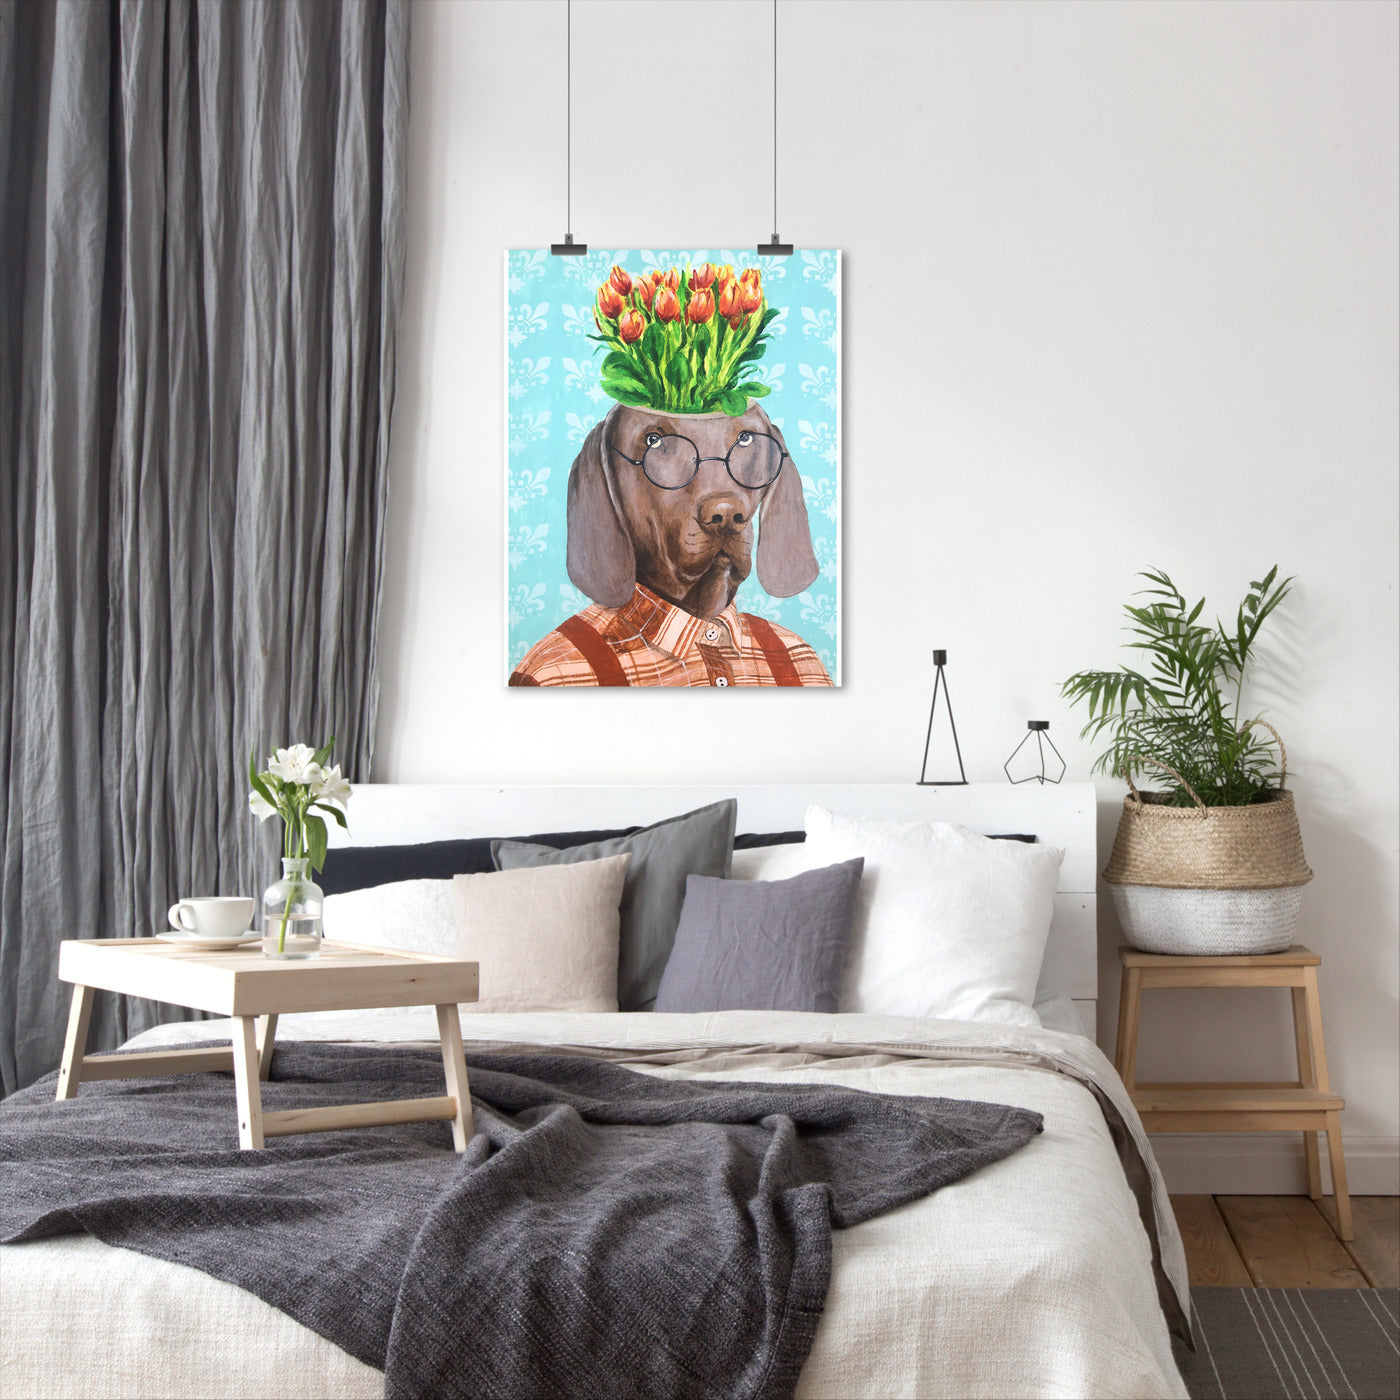 Weimarer With Flowers by Coco de Paris - Art Print - Americanflat